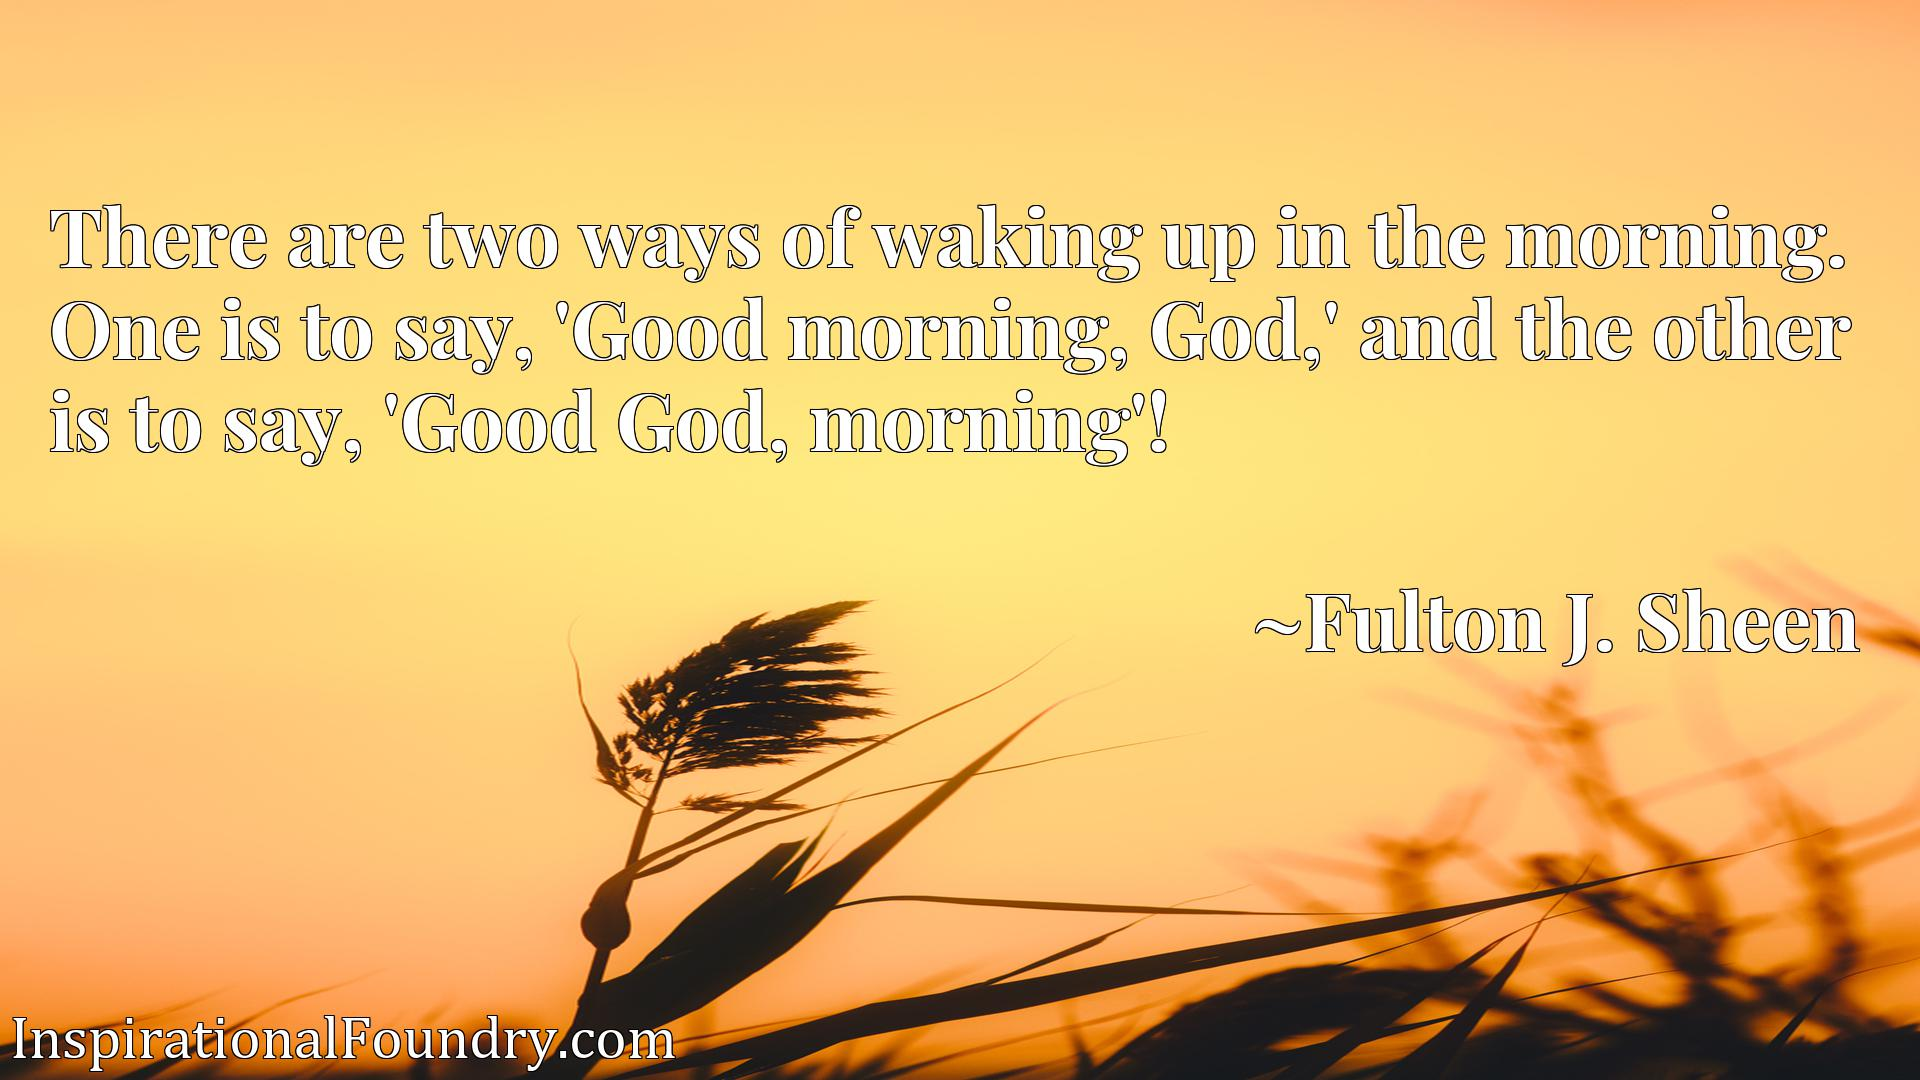 There are two ways of waking up in the morning. One is to say, 'Good morning, God,' and the other is to say, 'Good God, morning'!